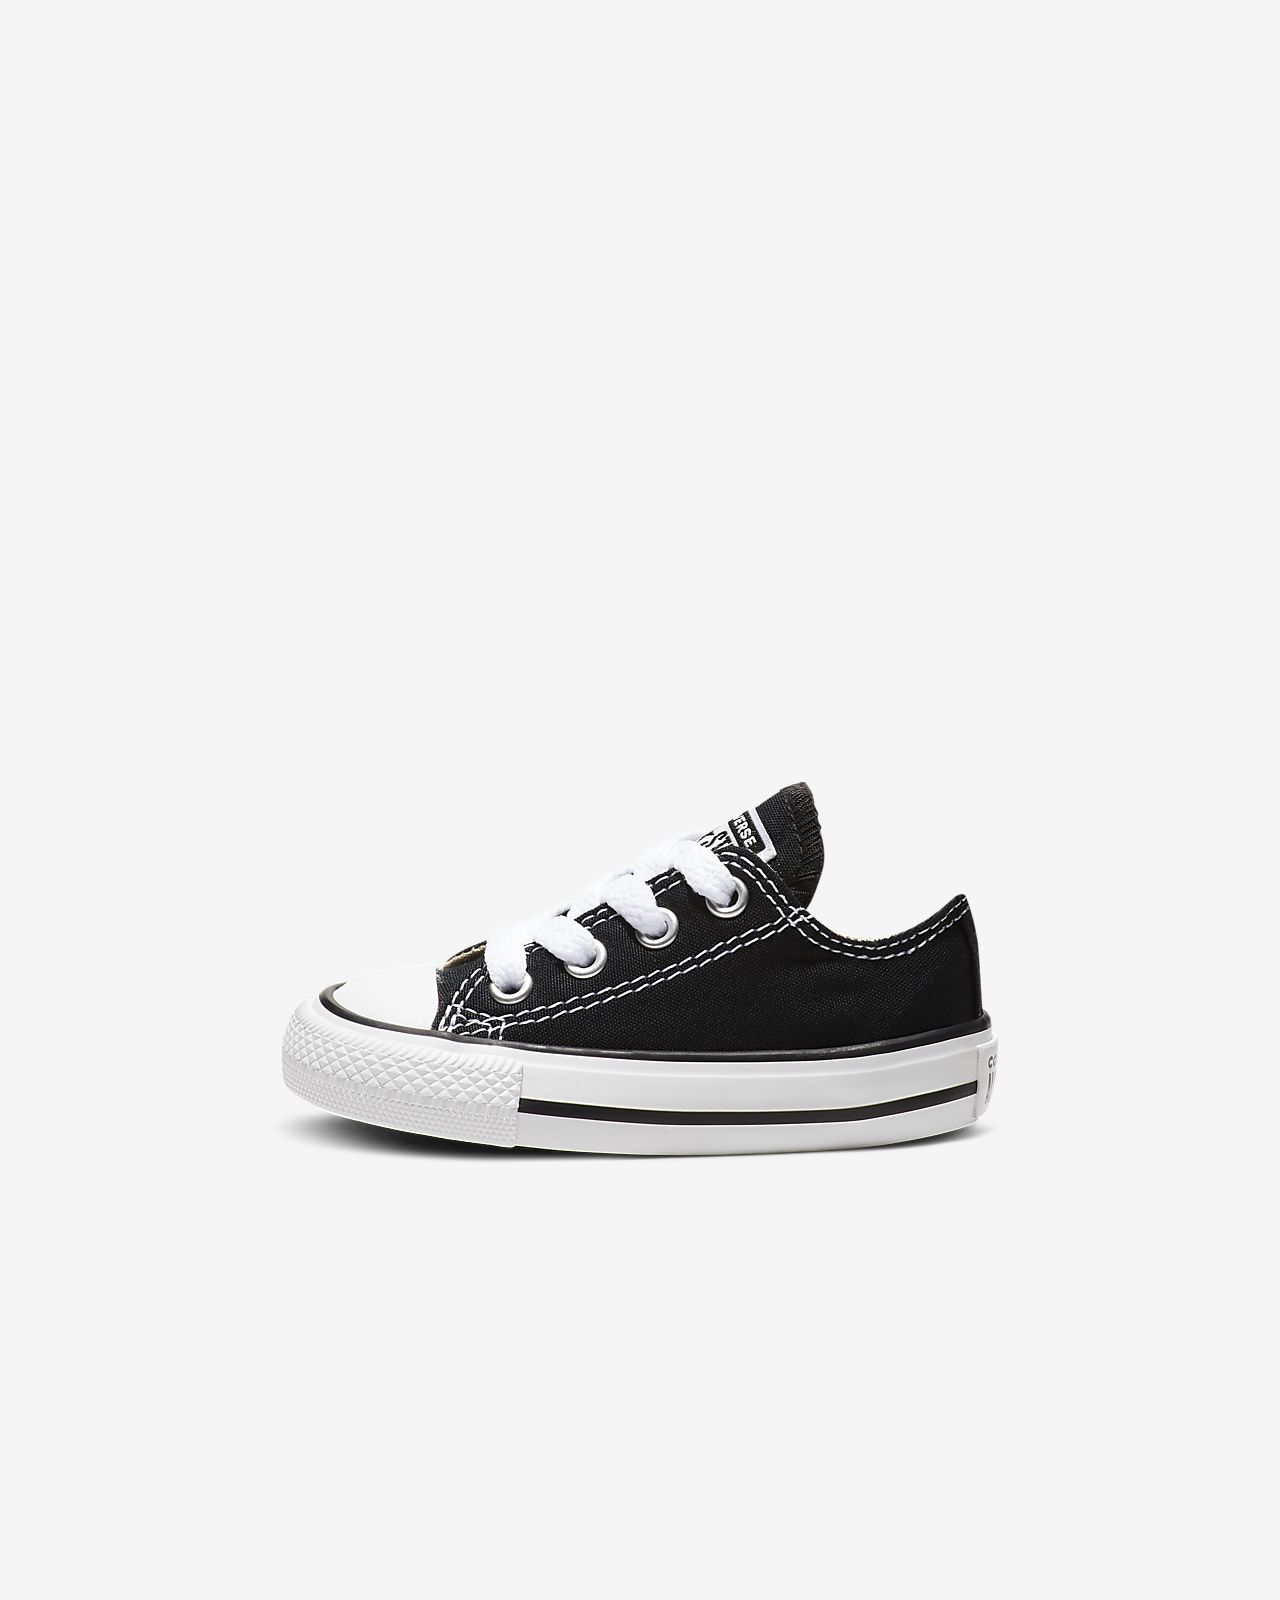 d7701263eabd Converse Chuck Taylor All Star Low Top Infant Toddler Shoe. Nike.com